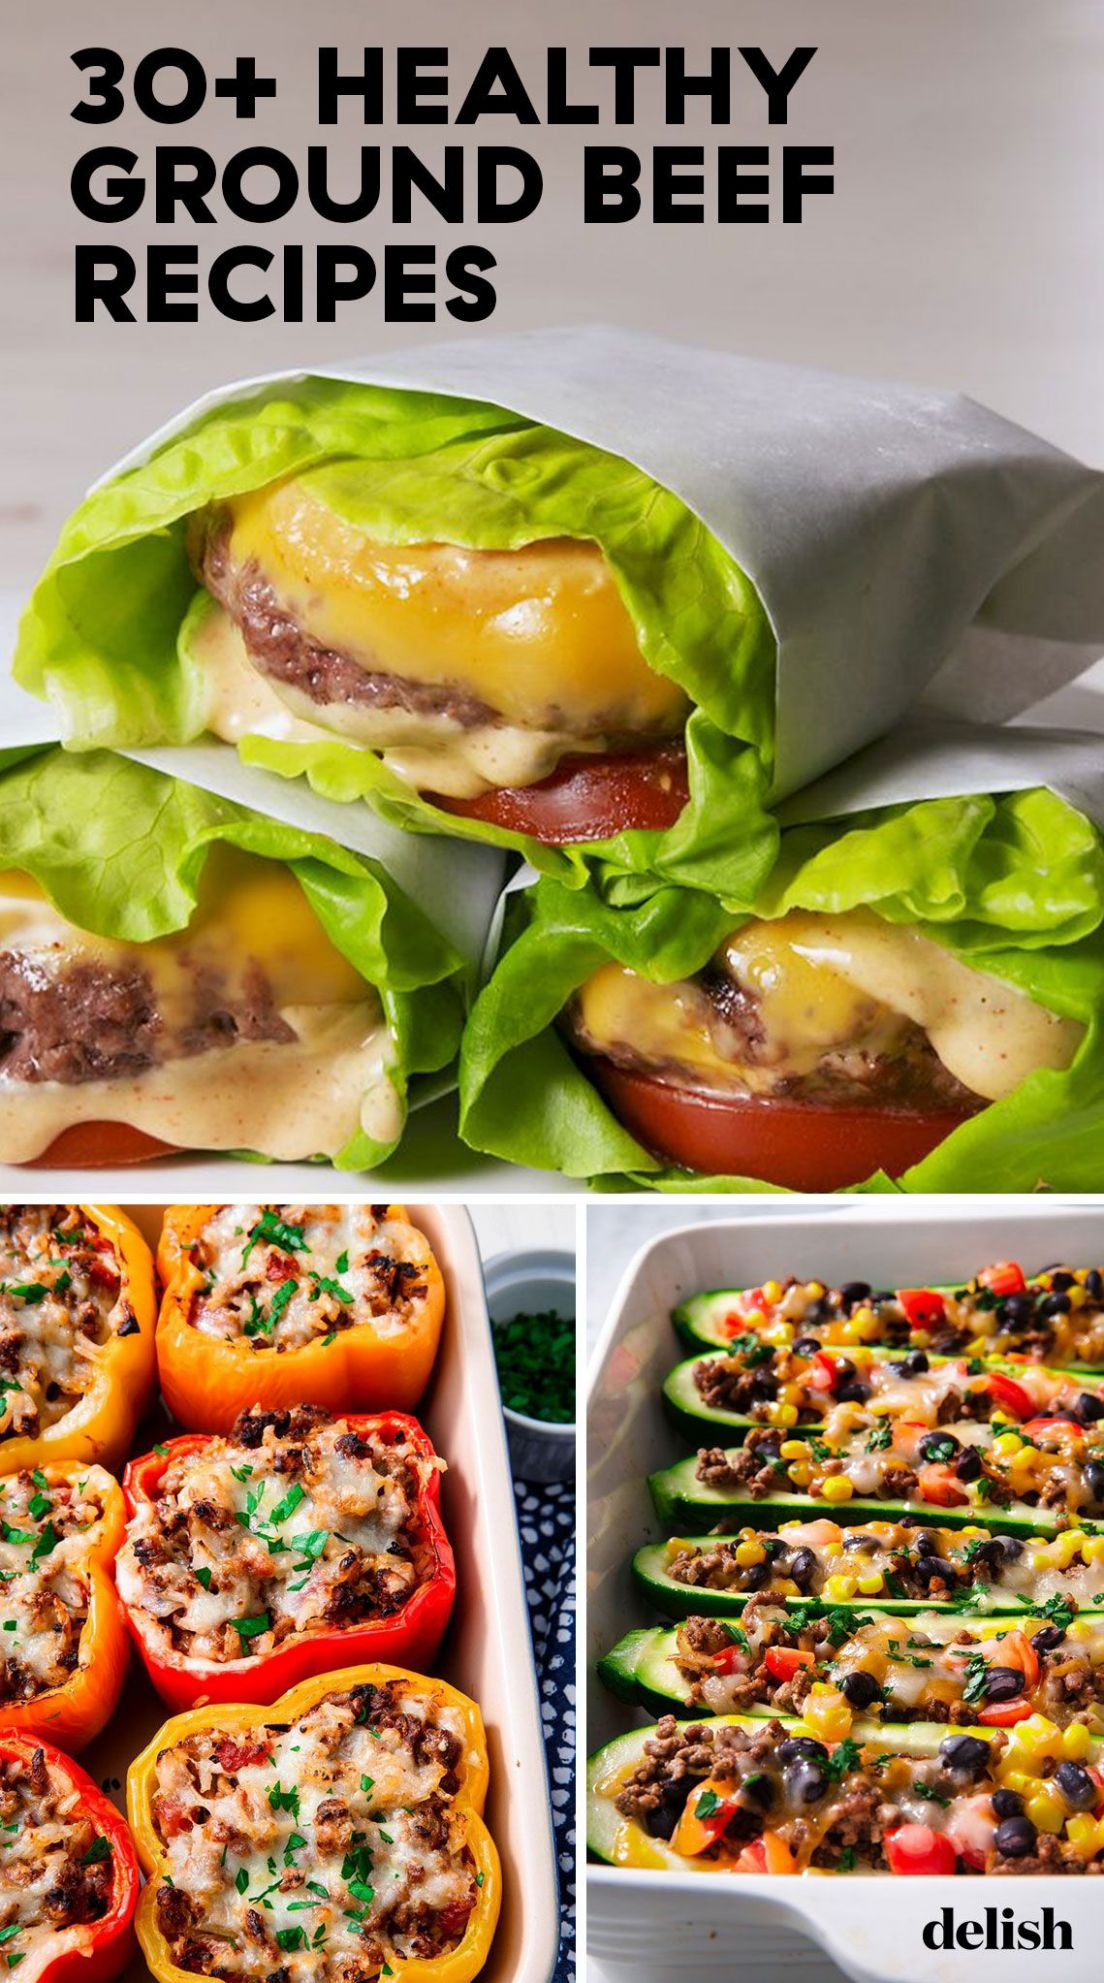 12+ Healthy Ground Beef Recipes - Easy Beef Healthy Ideas You'll Love